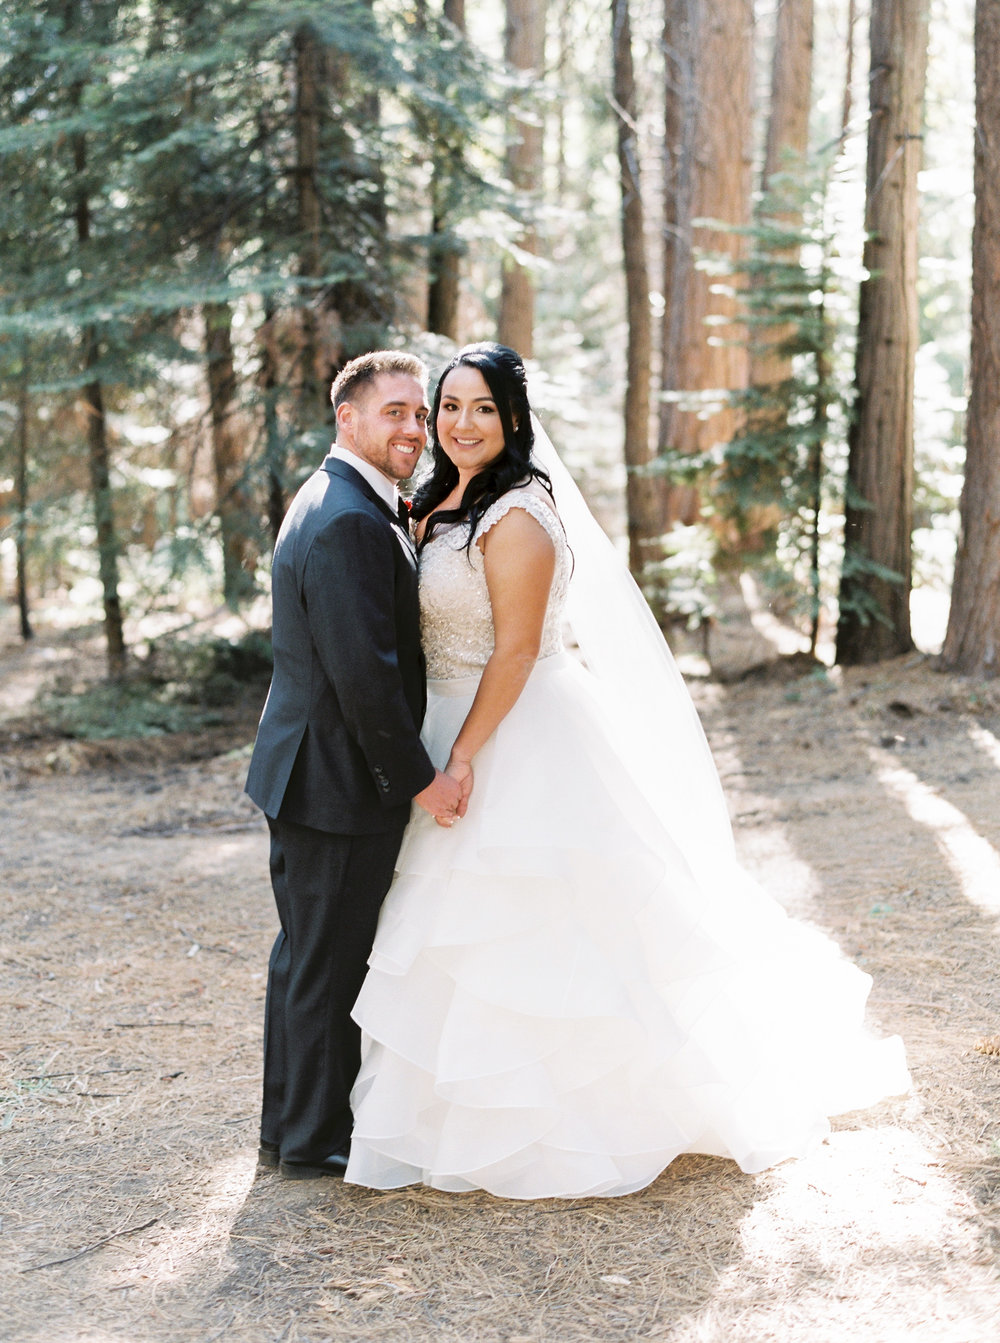 Tenaya-lodge-wedding-at-yosemite-national-park-california-29.jpg